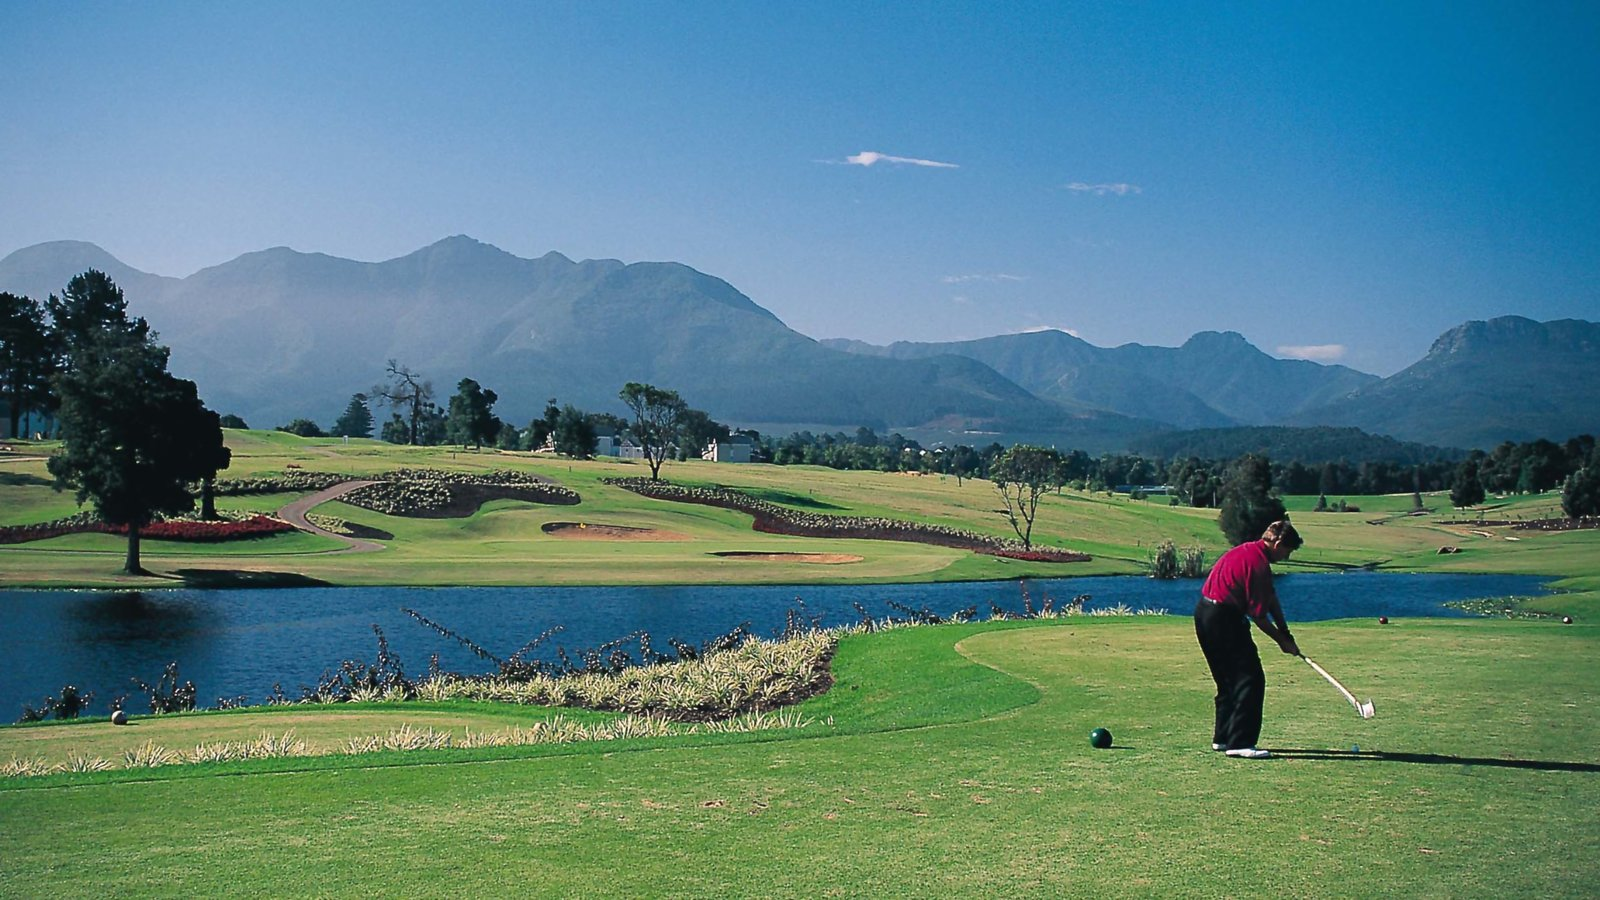 Somerset West showing landscape views, golf and mountains